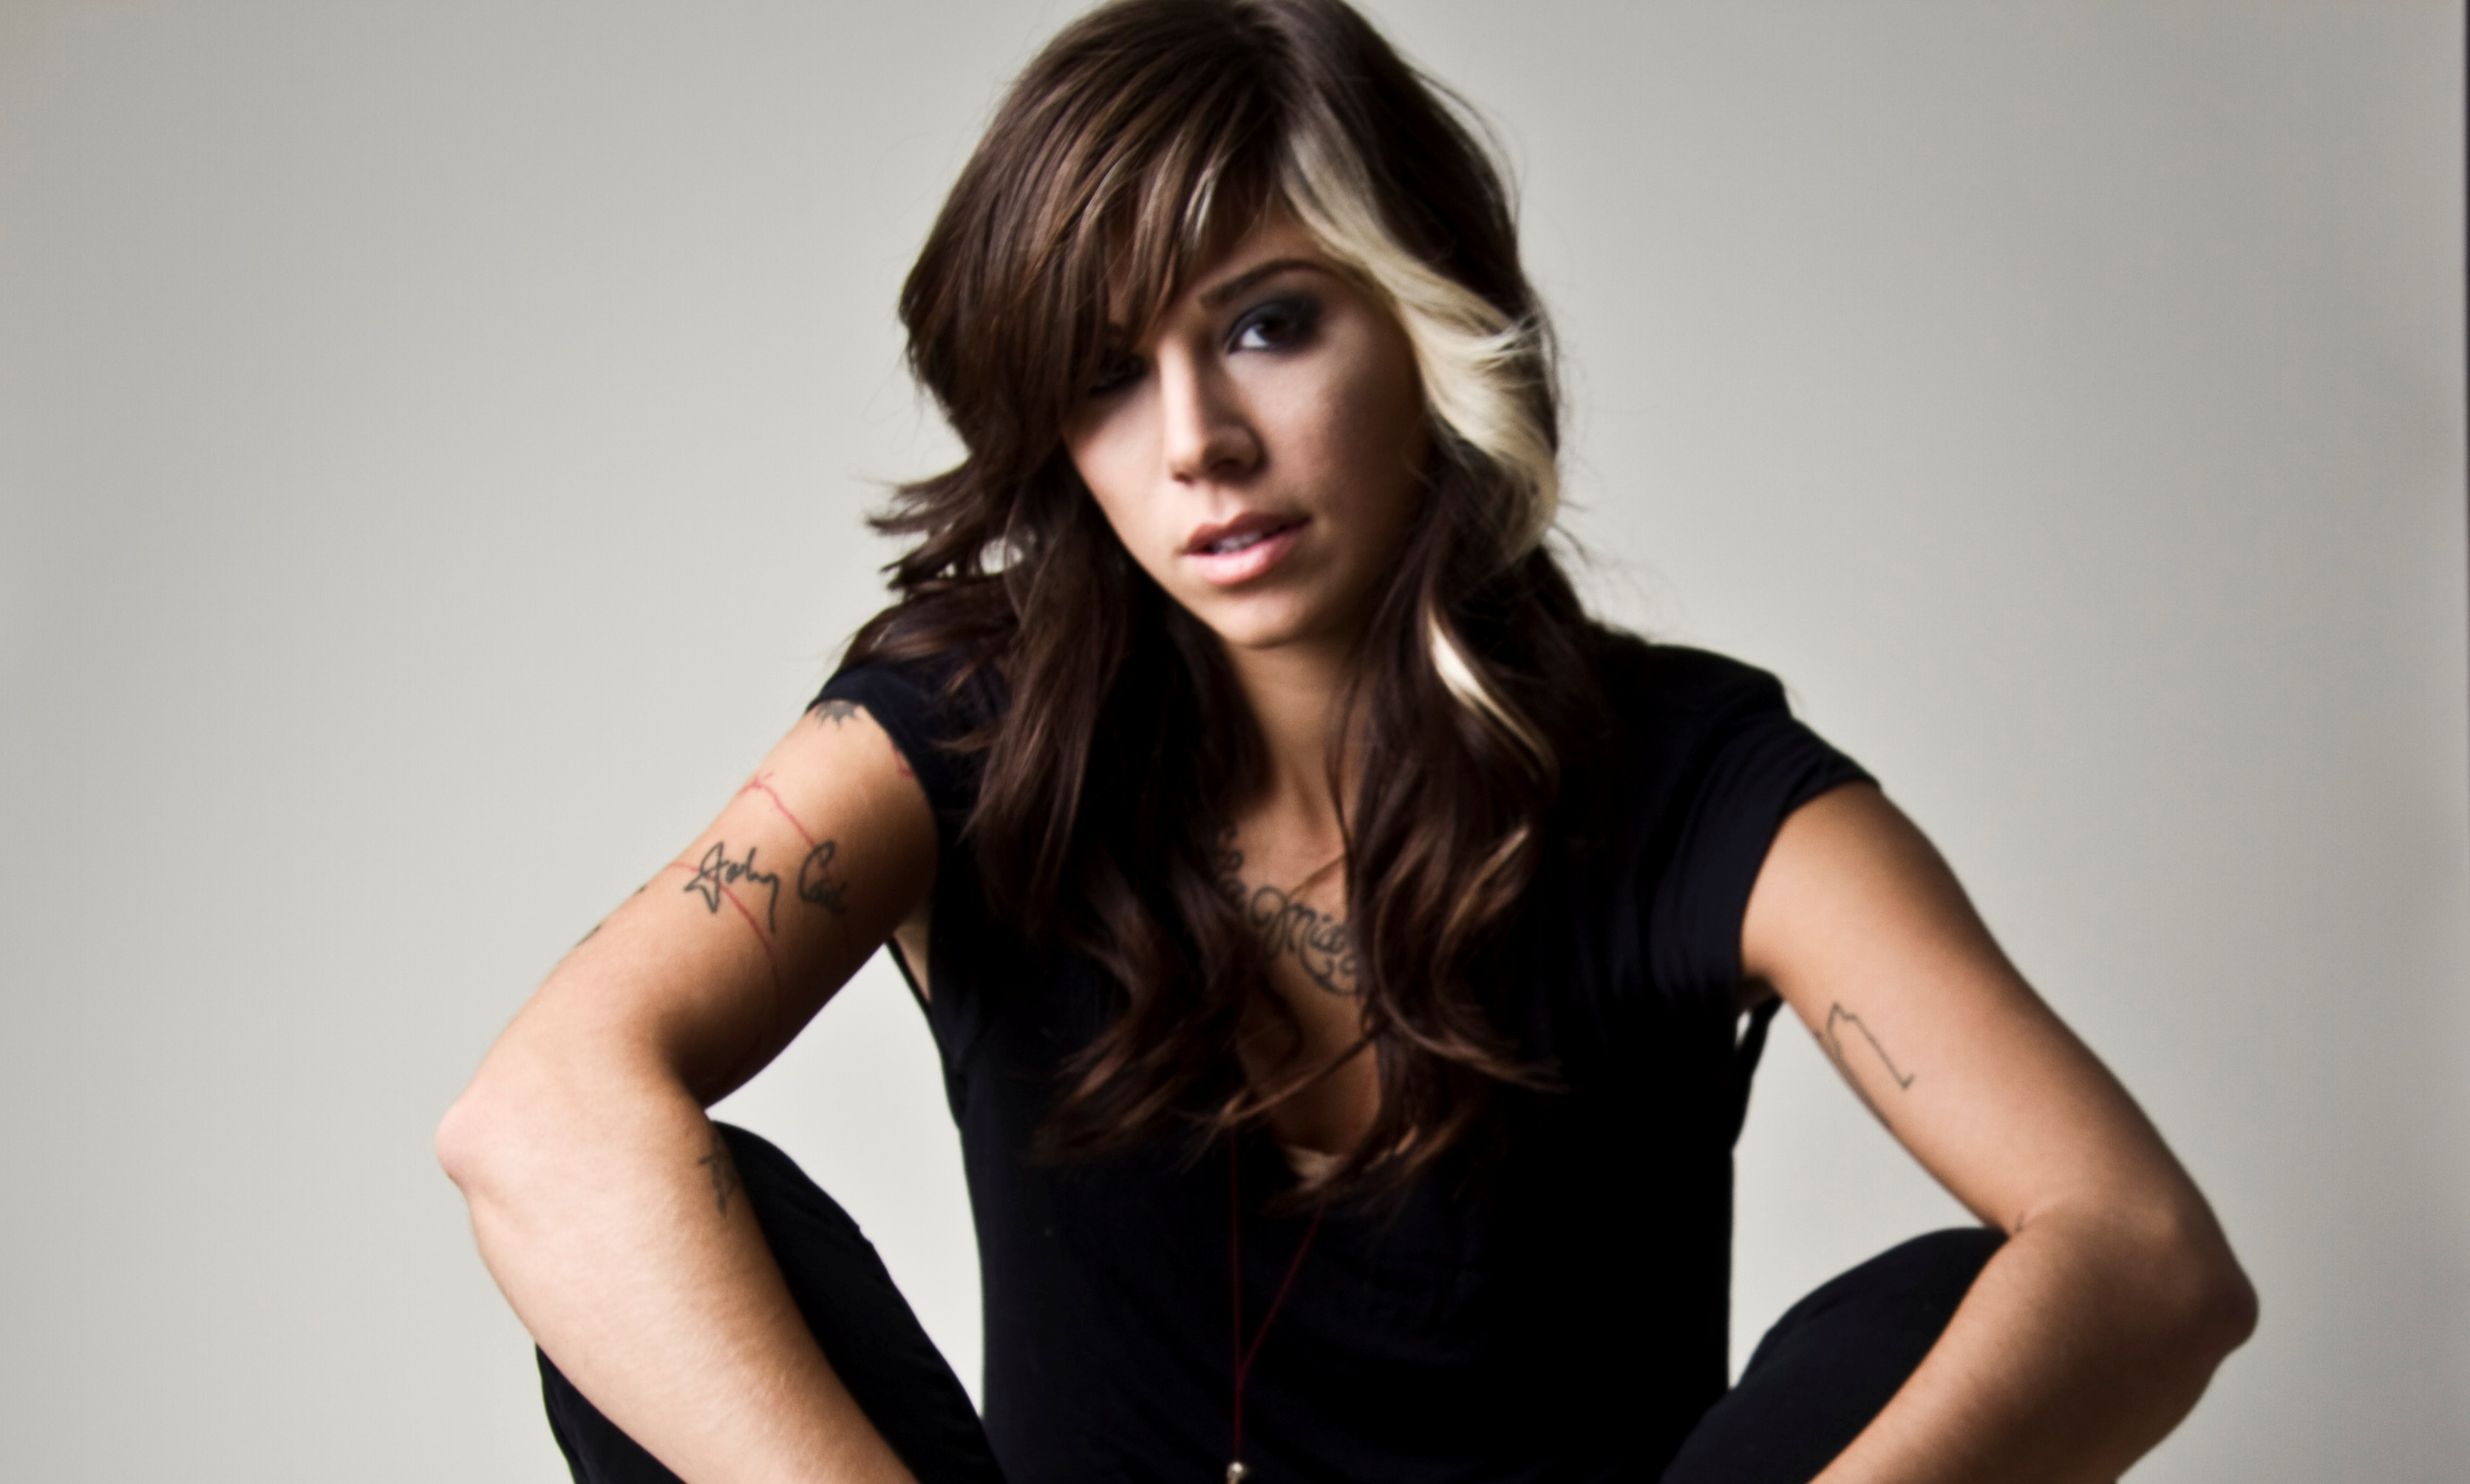 christina perri 2008 - photo #6